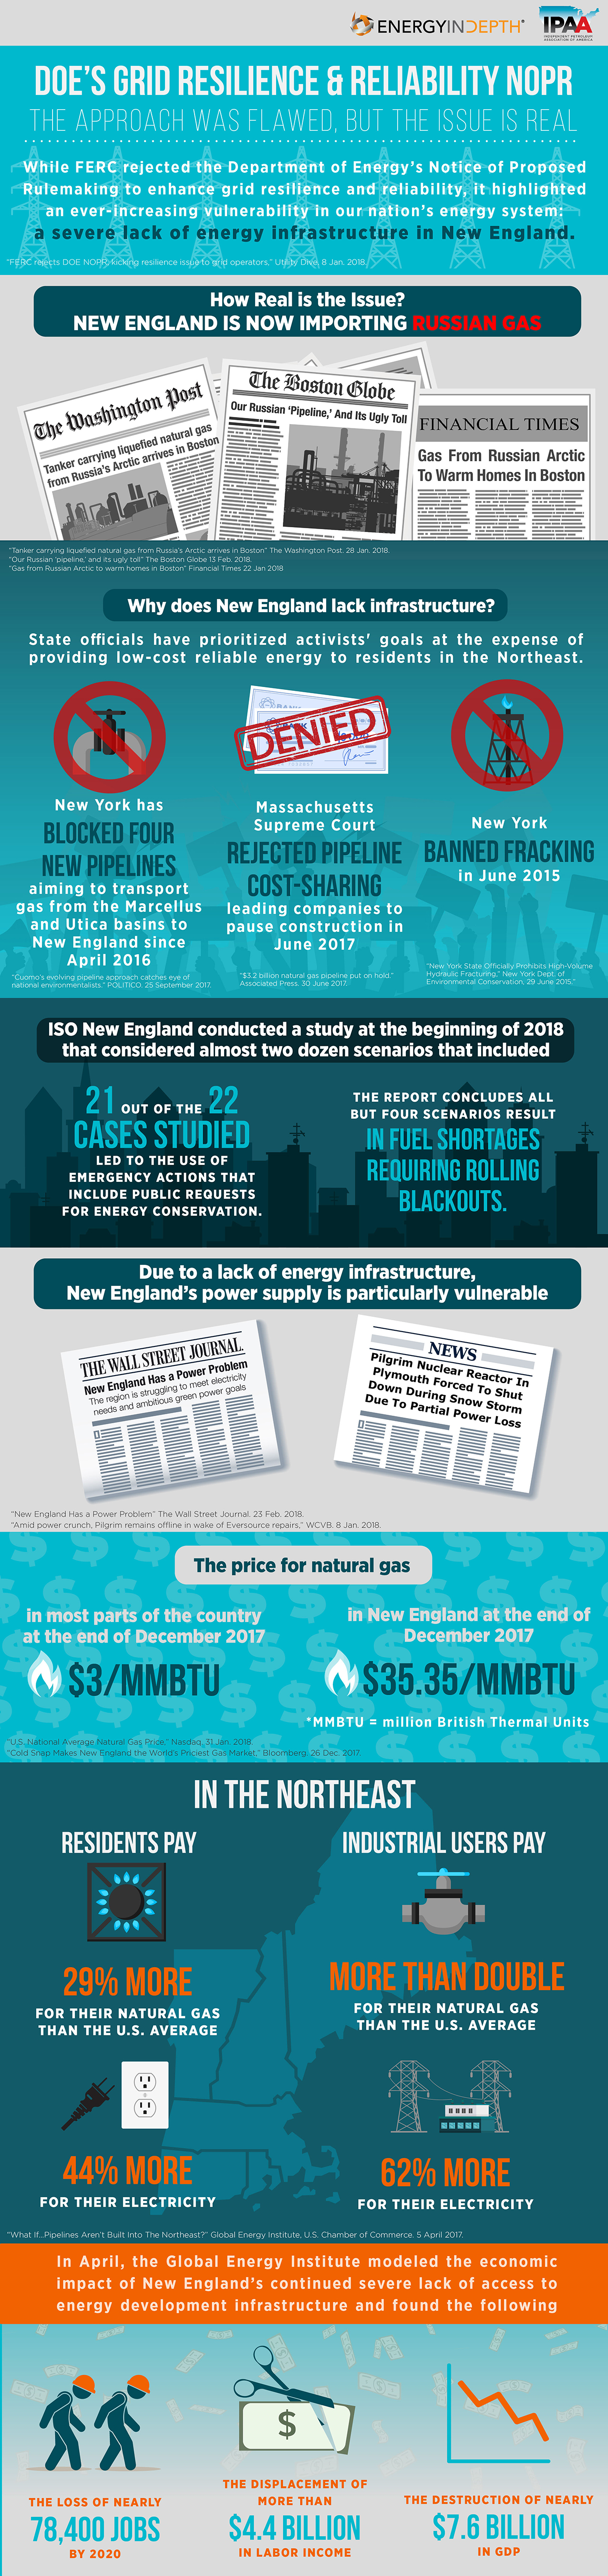 Russian LNG or Pipelines for New England? Massachusetts AG ...